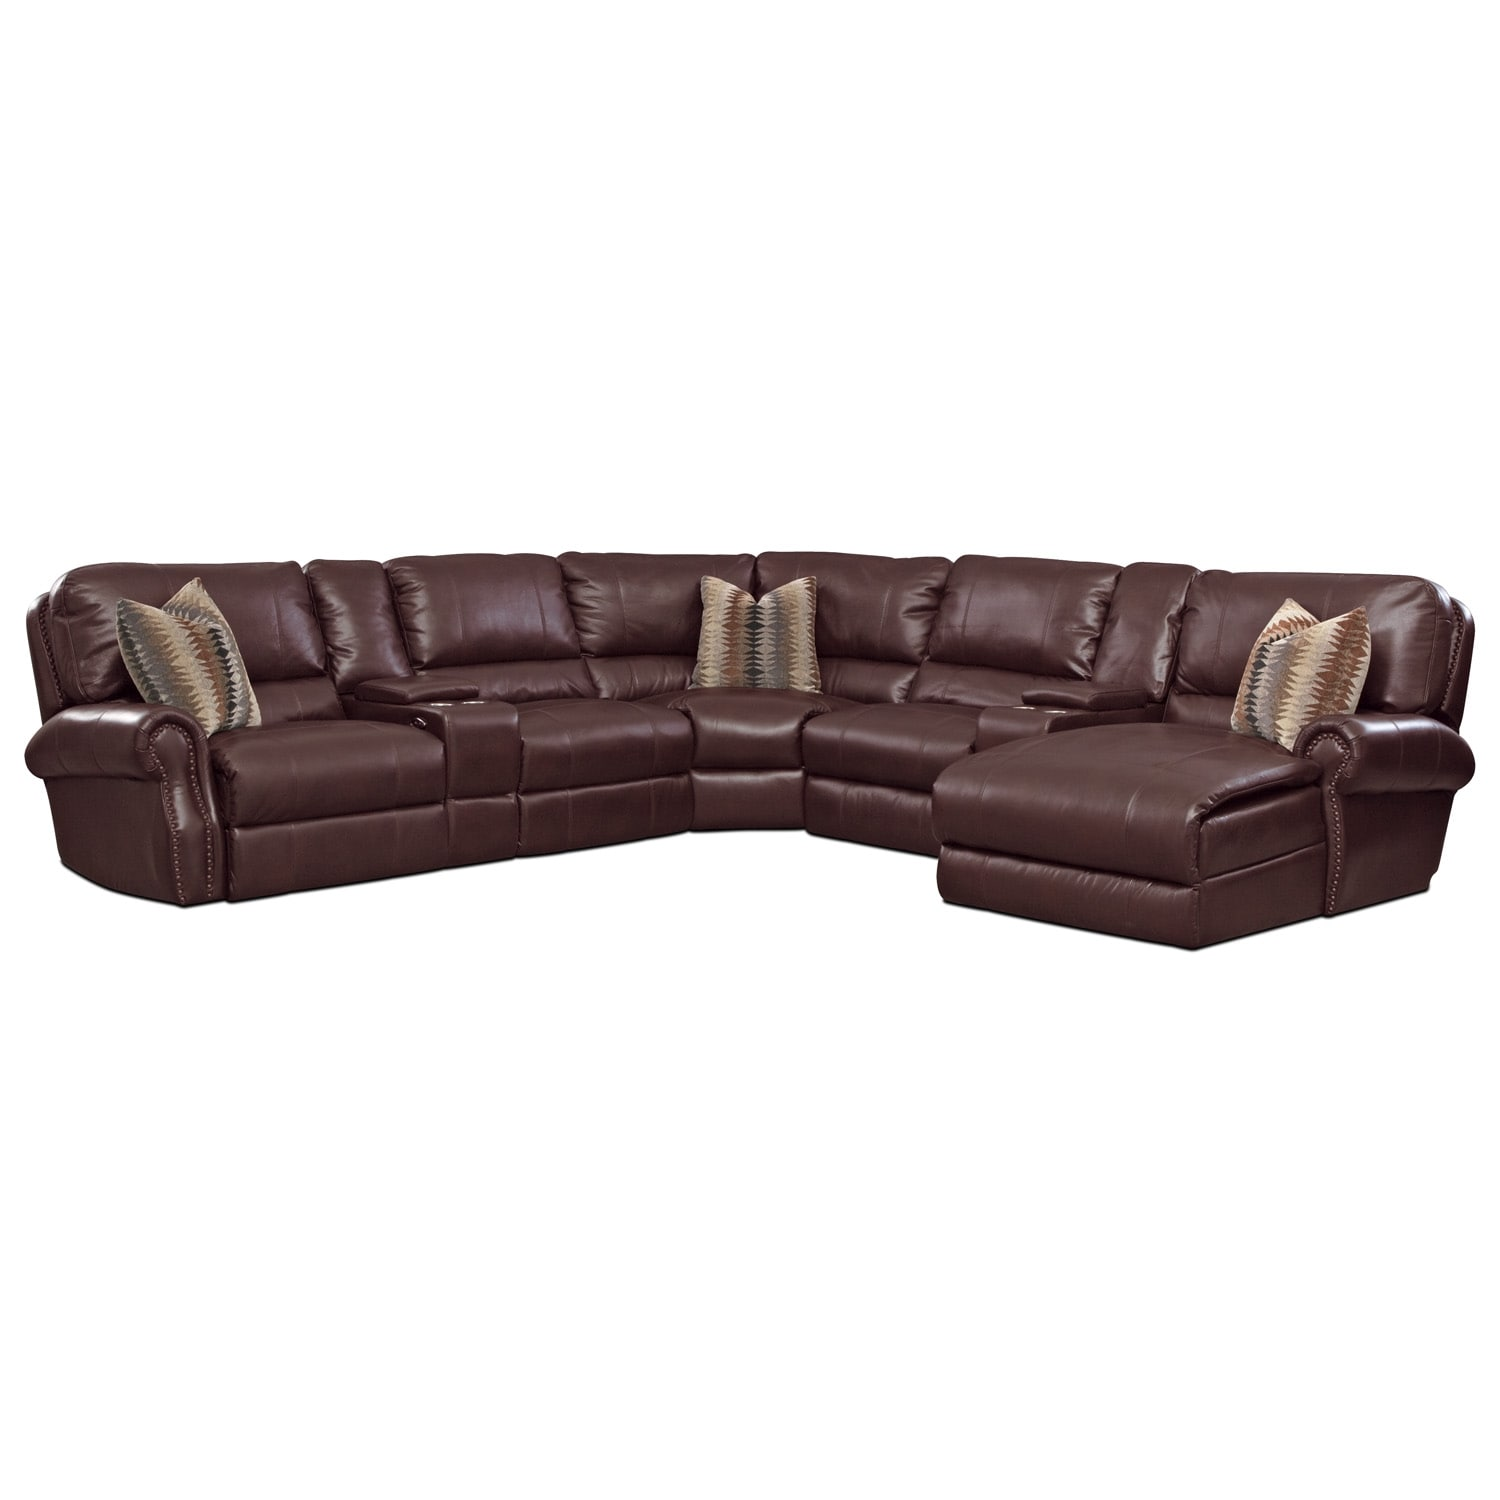 [Princeton 5 Pc. Power Reclining Sectional]